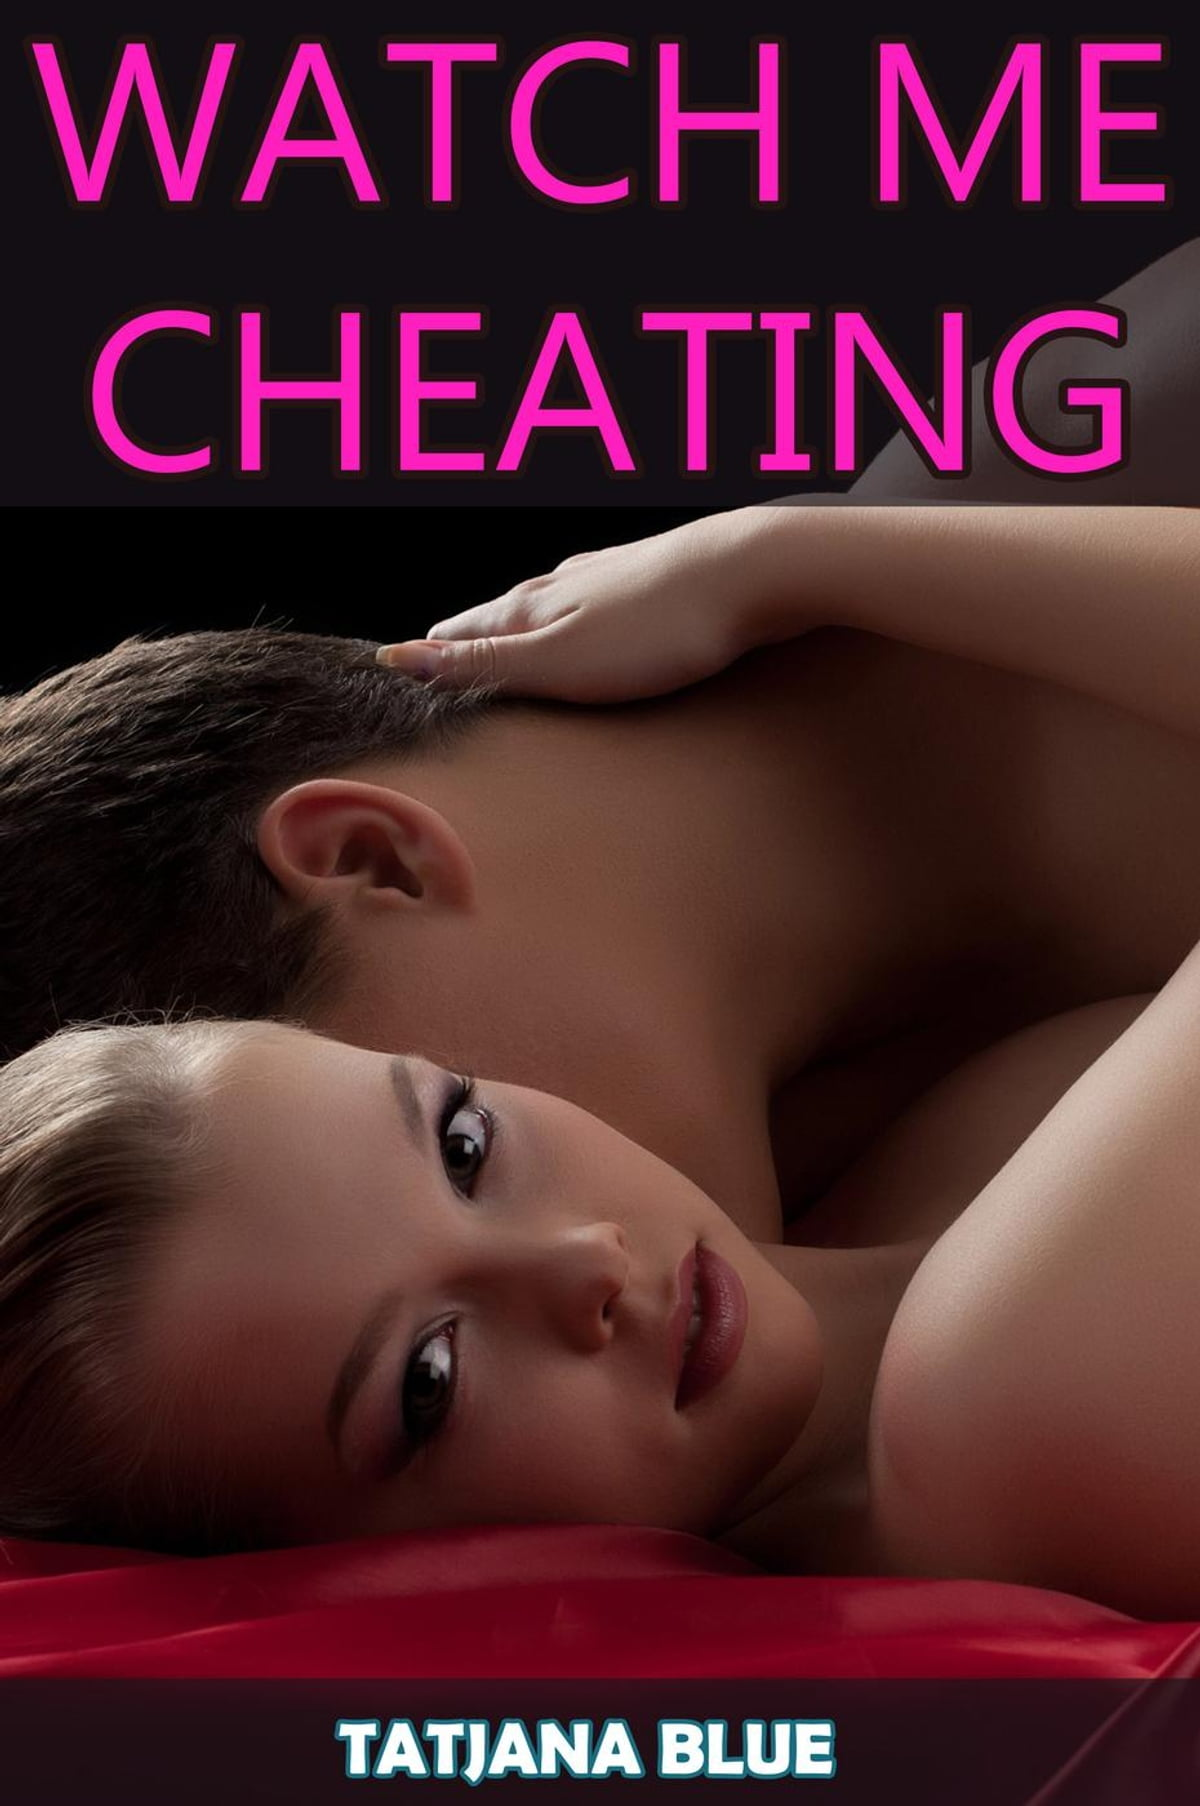 watch me cheating (cuckold hotwife erotica) ebooktatjana blue